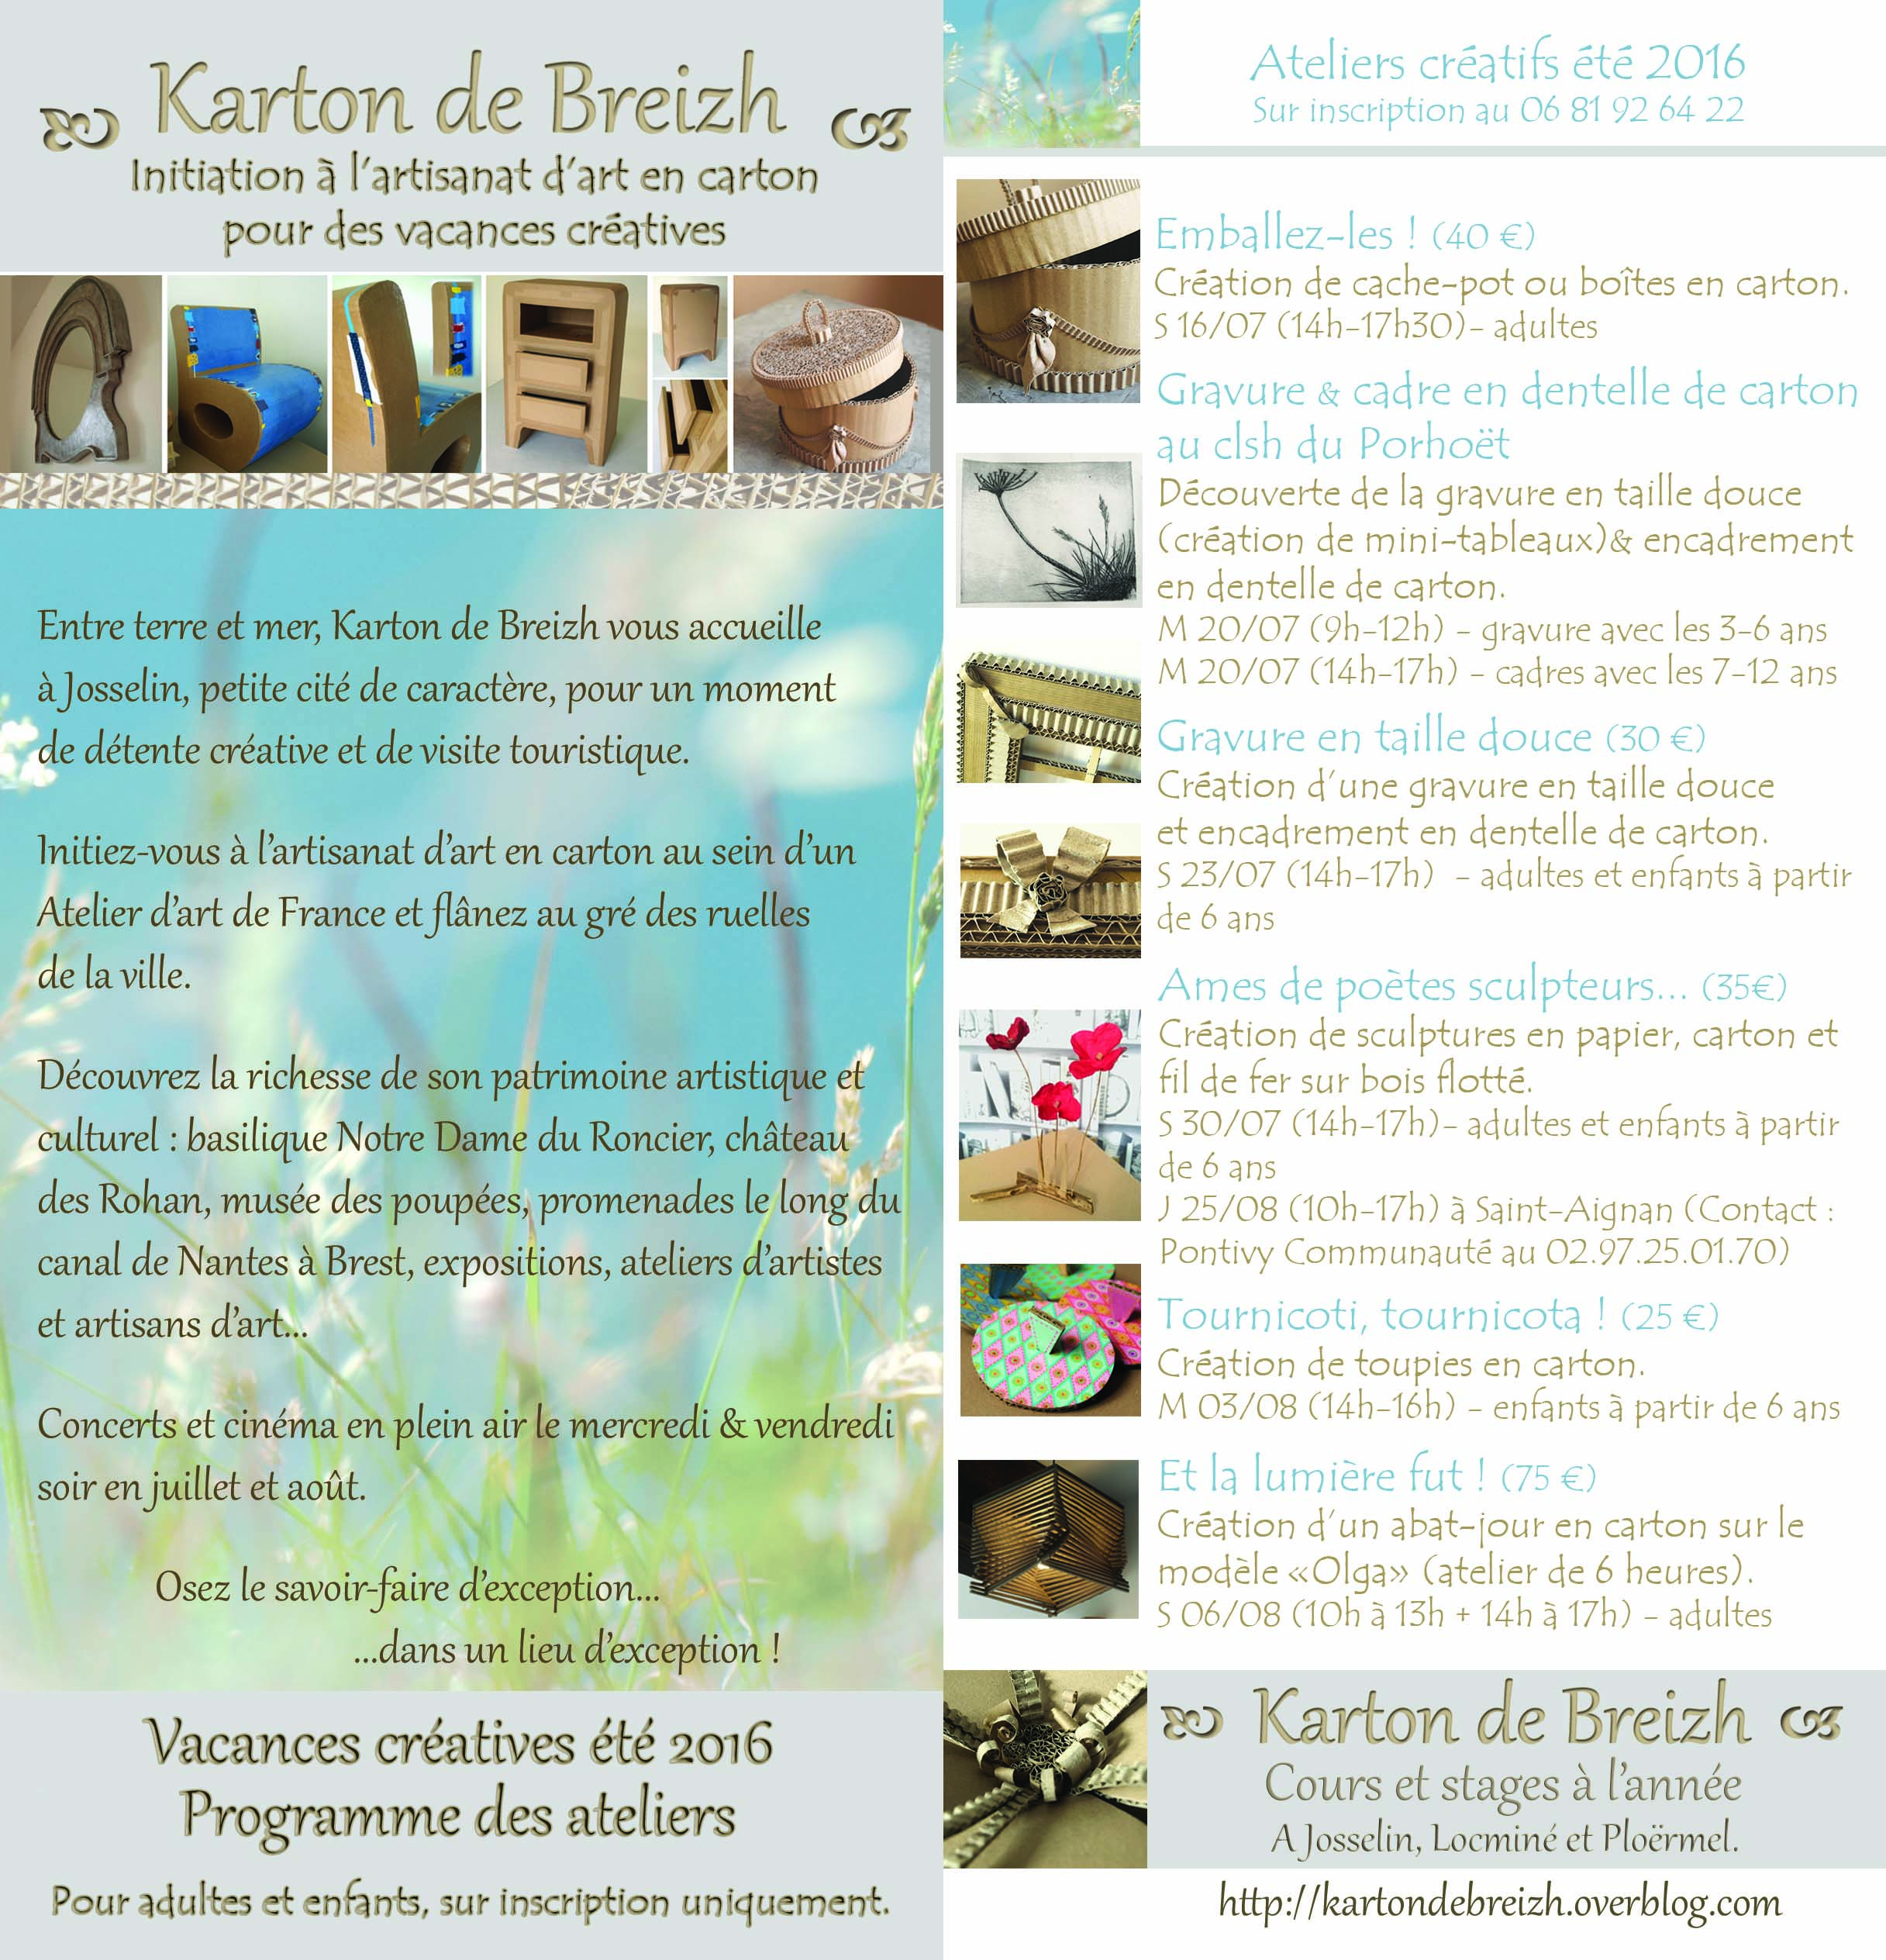 programme des ateliers cr atifs t 2016 avec karton de breizh josselin karton de breizh. Black Bedroom Furniture Sets. Home Design Ideas